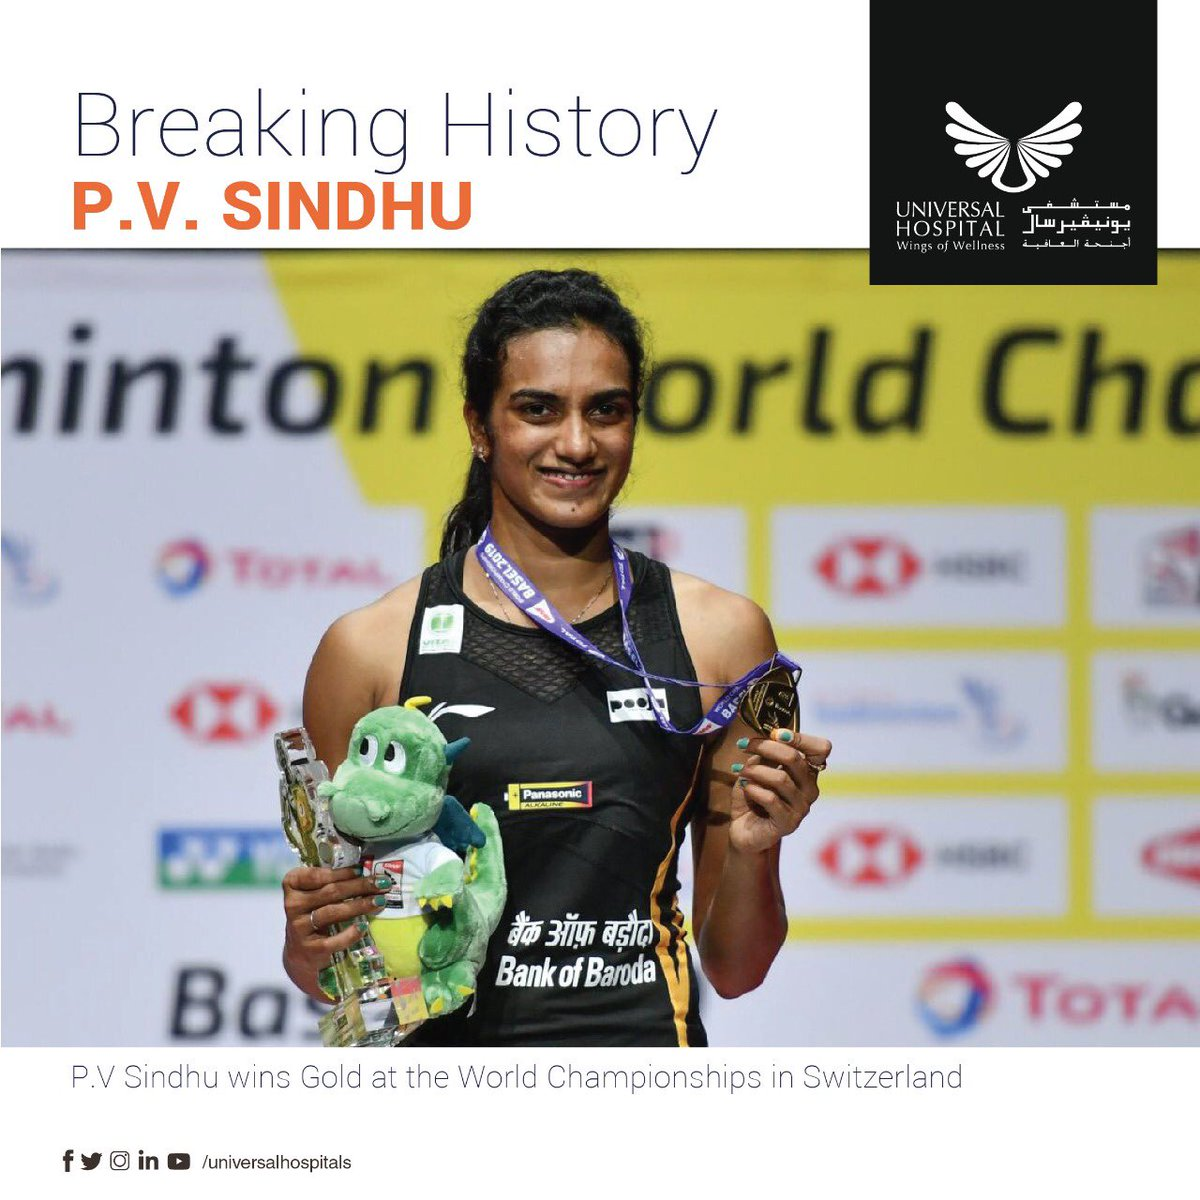 Proud Moment for India.  Badminton player P.V Sindhu win Gold at the World Championships in Switzerland.  She defeated Japan's Nozomi Okuhara on Sunday, becoming the first Indian to win the coveted title.  #wellness #UH #sports #UniversalHospital #india #proudindia